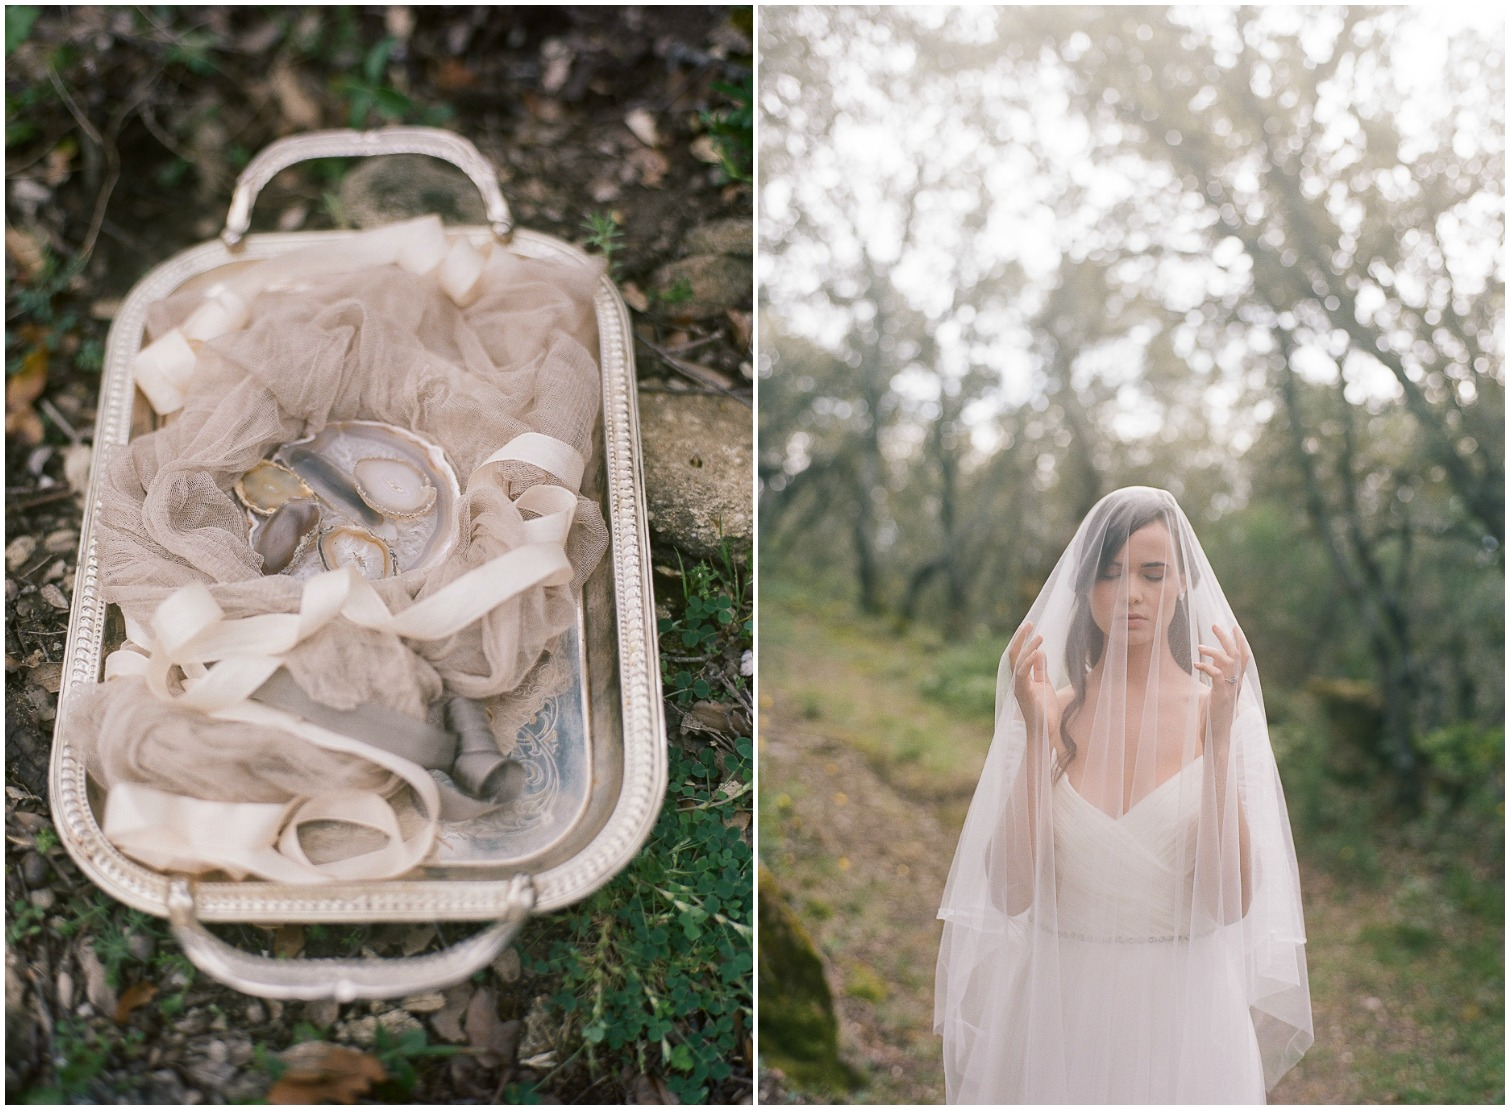 Beautil wedding rings and veil ©Celine Chhuon